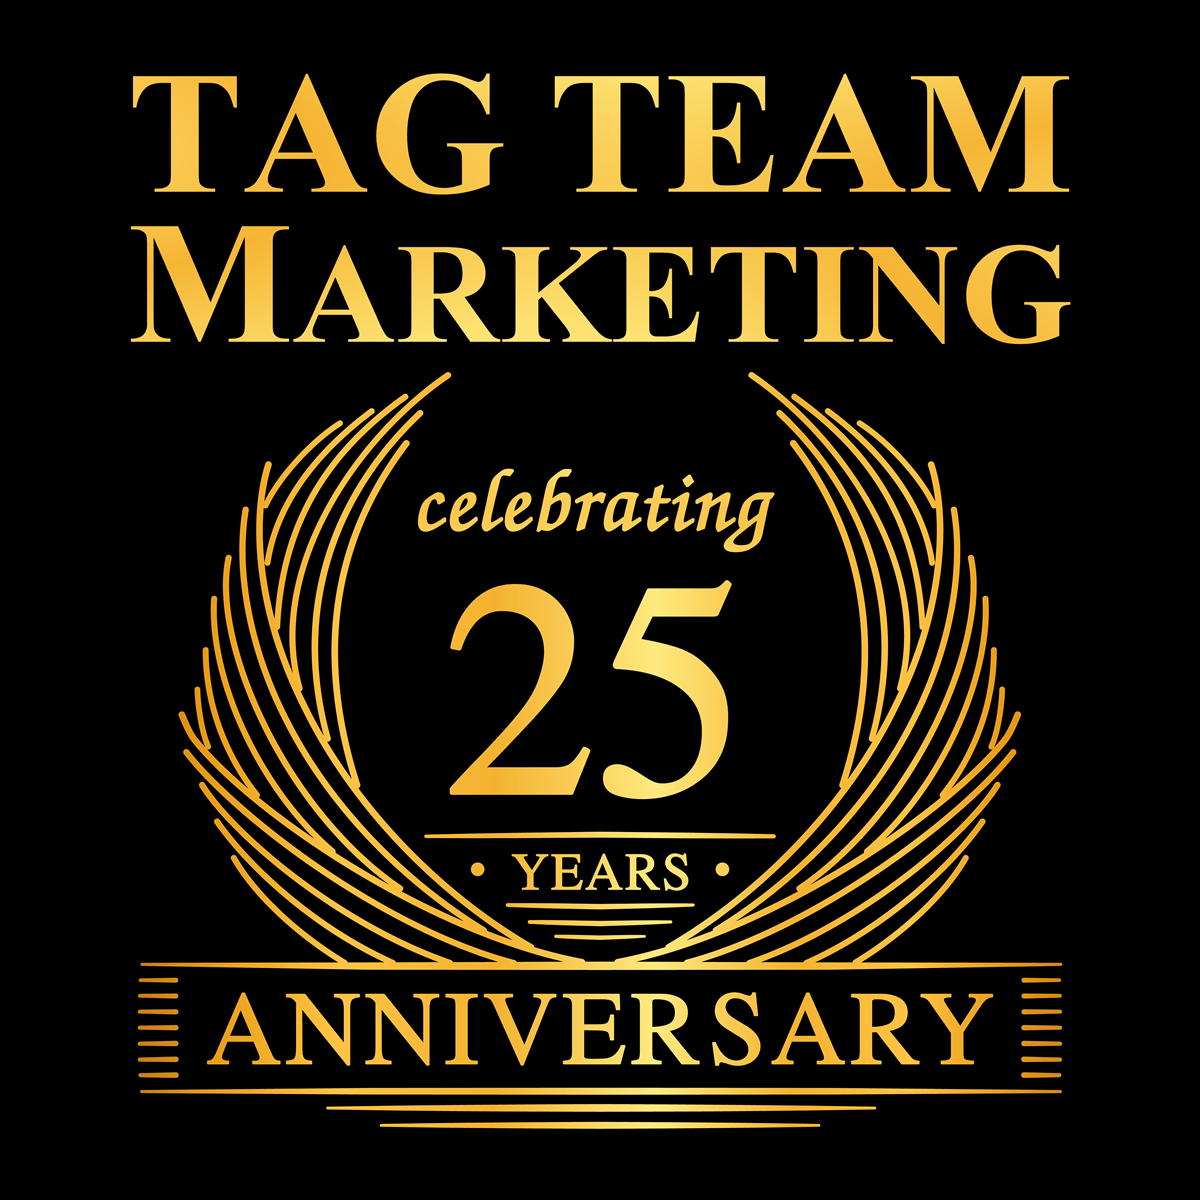 TAG TEAM Marketing Celebrating 25 Years